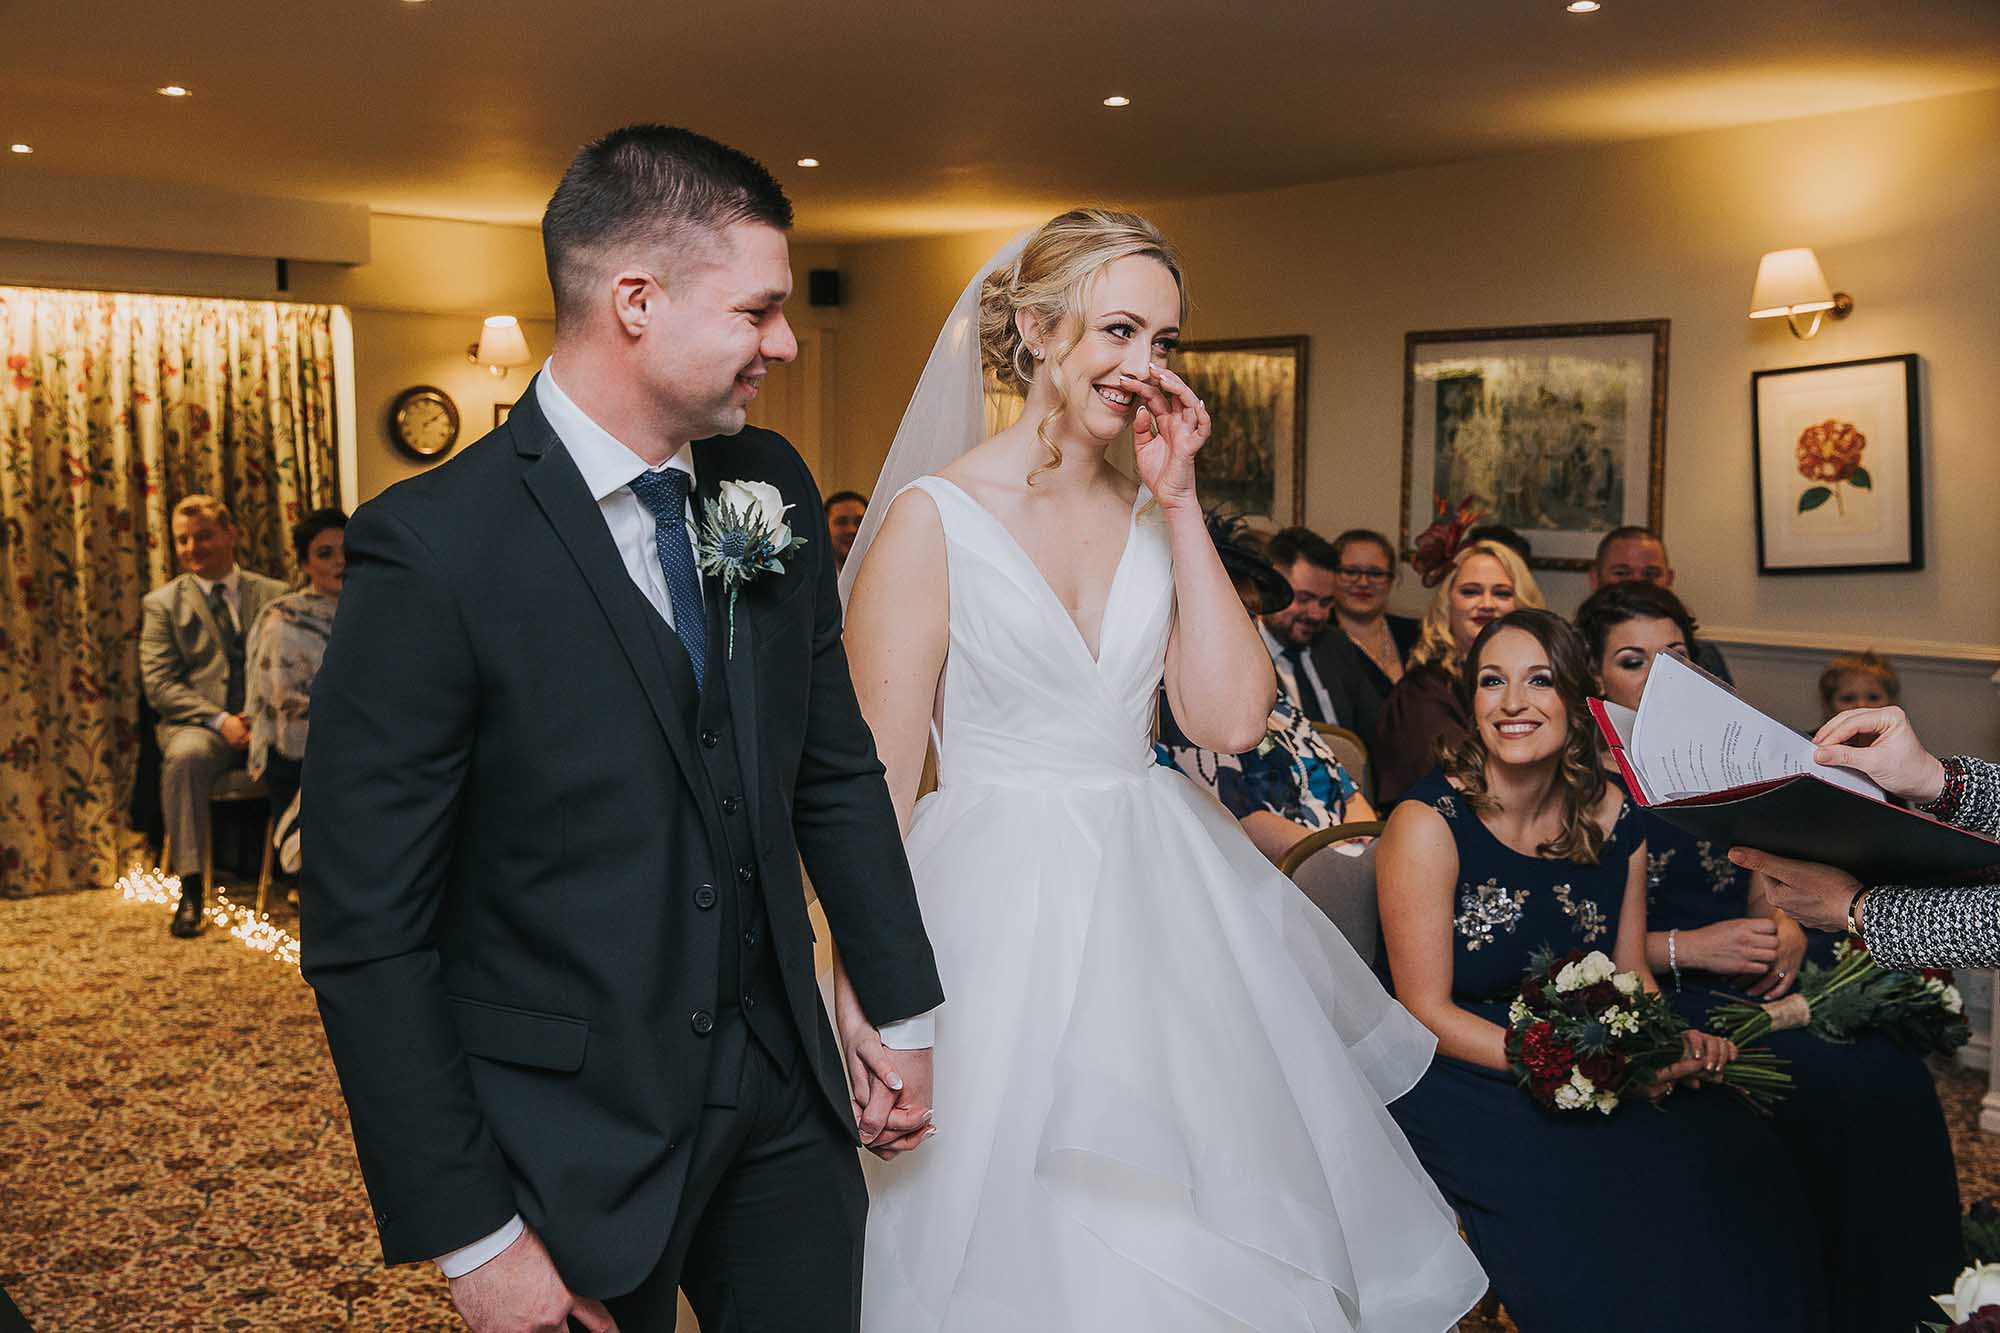 wedding ceremony at Holdsworth House